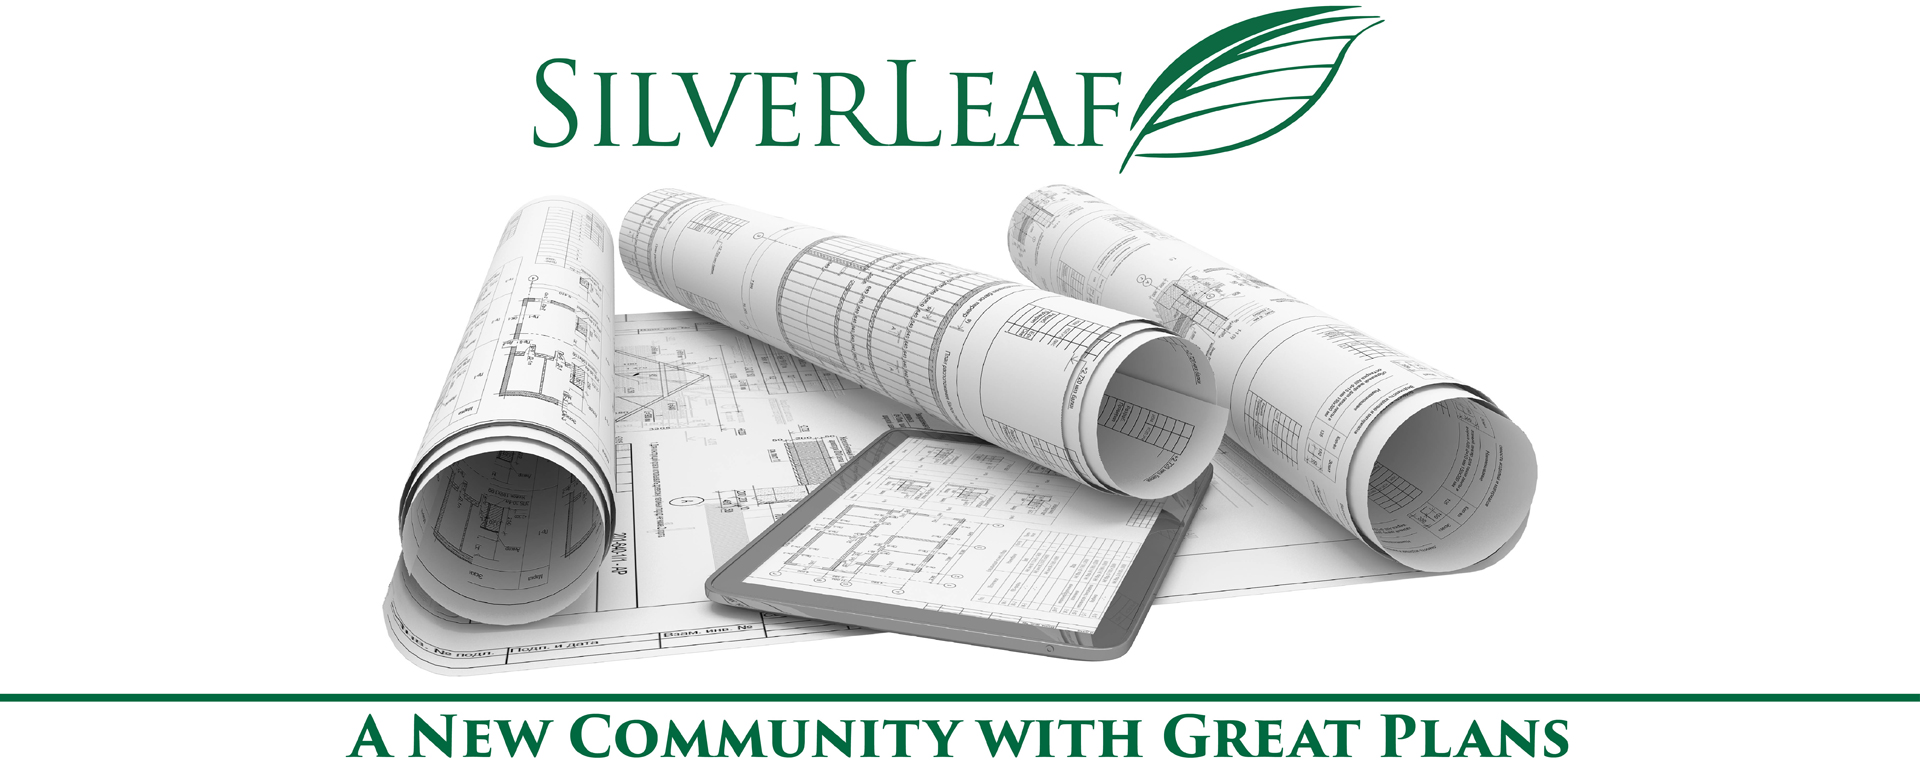 SilverLeaf-Site-Plans-Website-Header